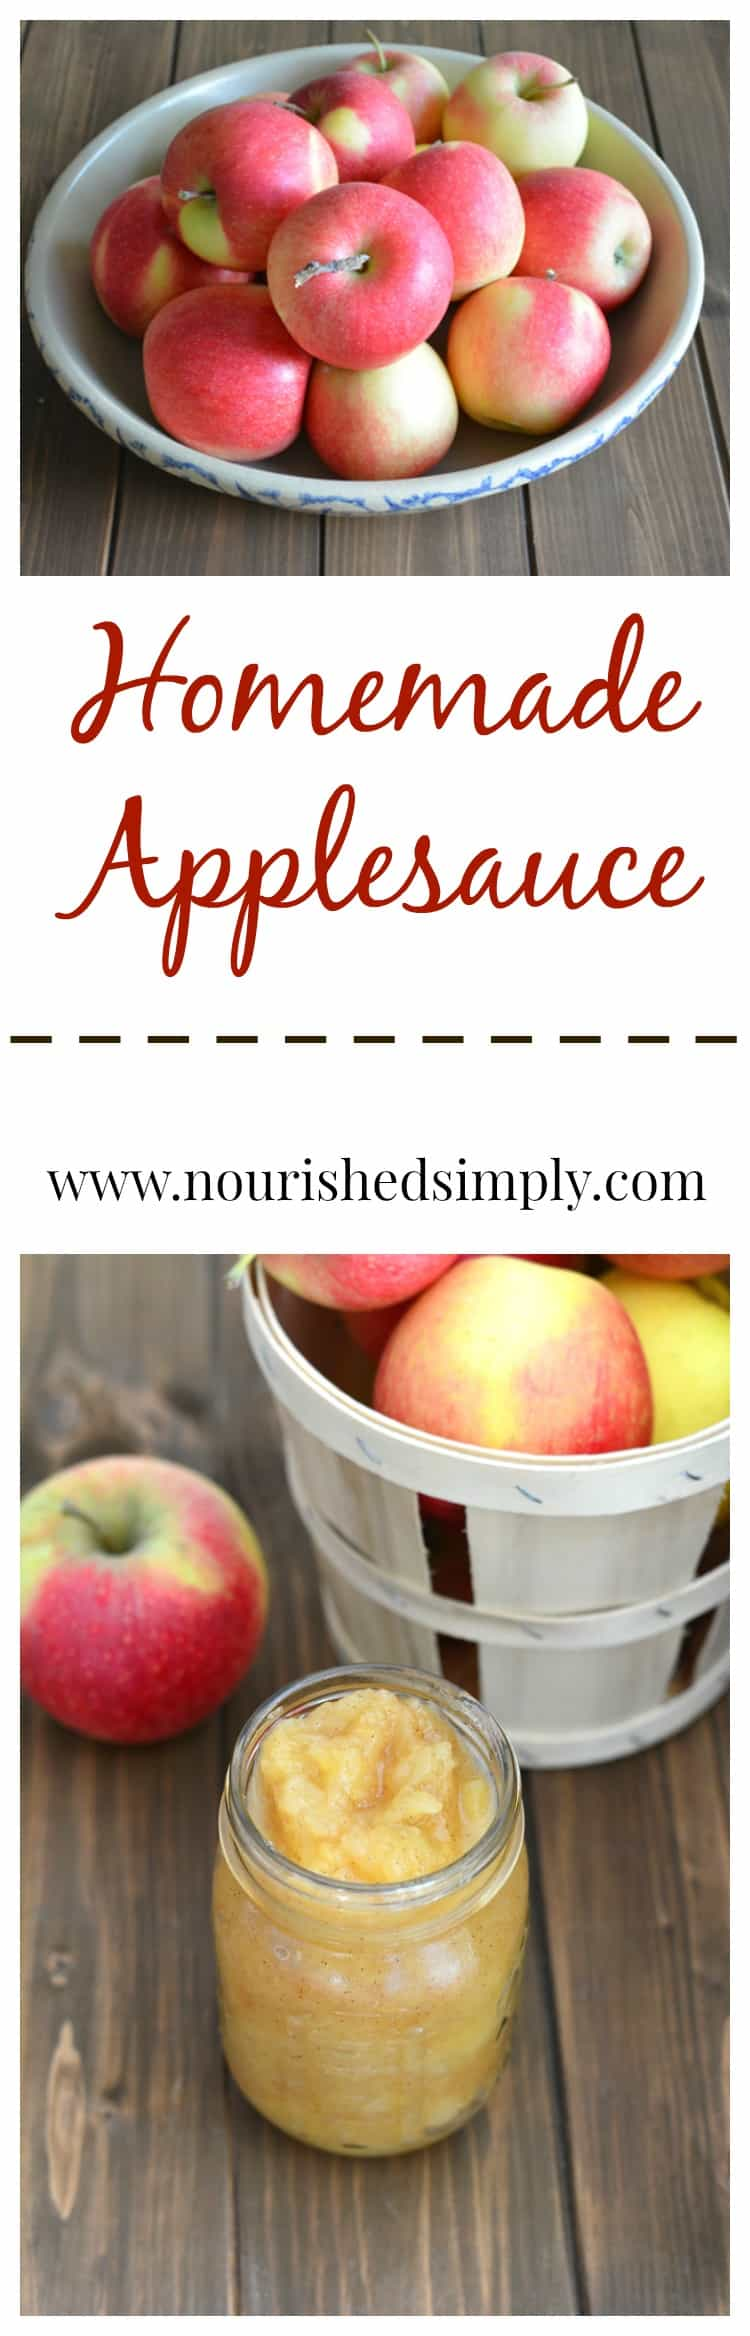 Applesauce homemade with just apples and apple cider.